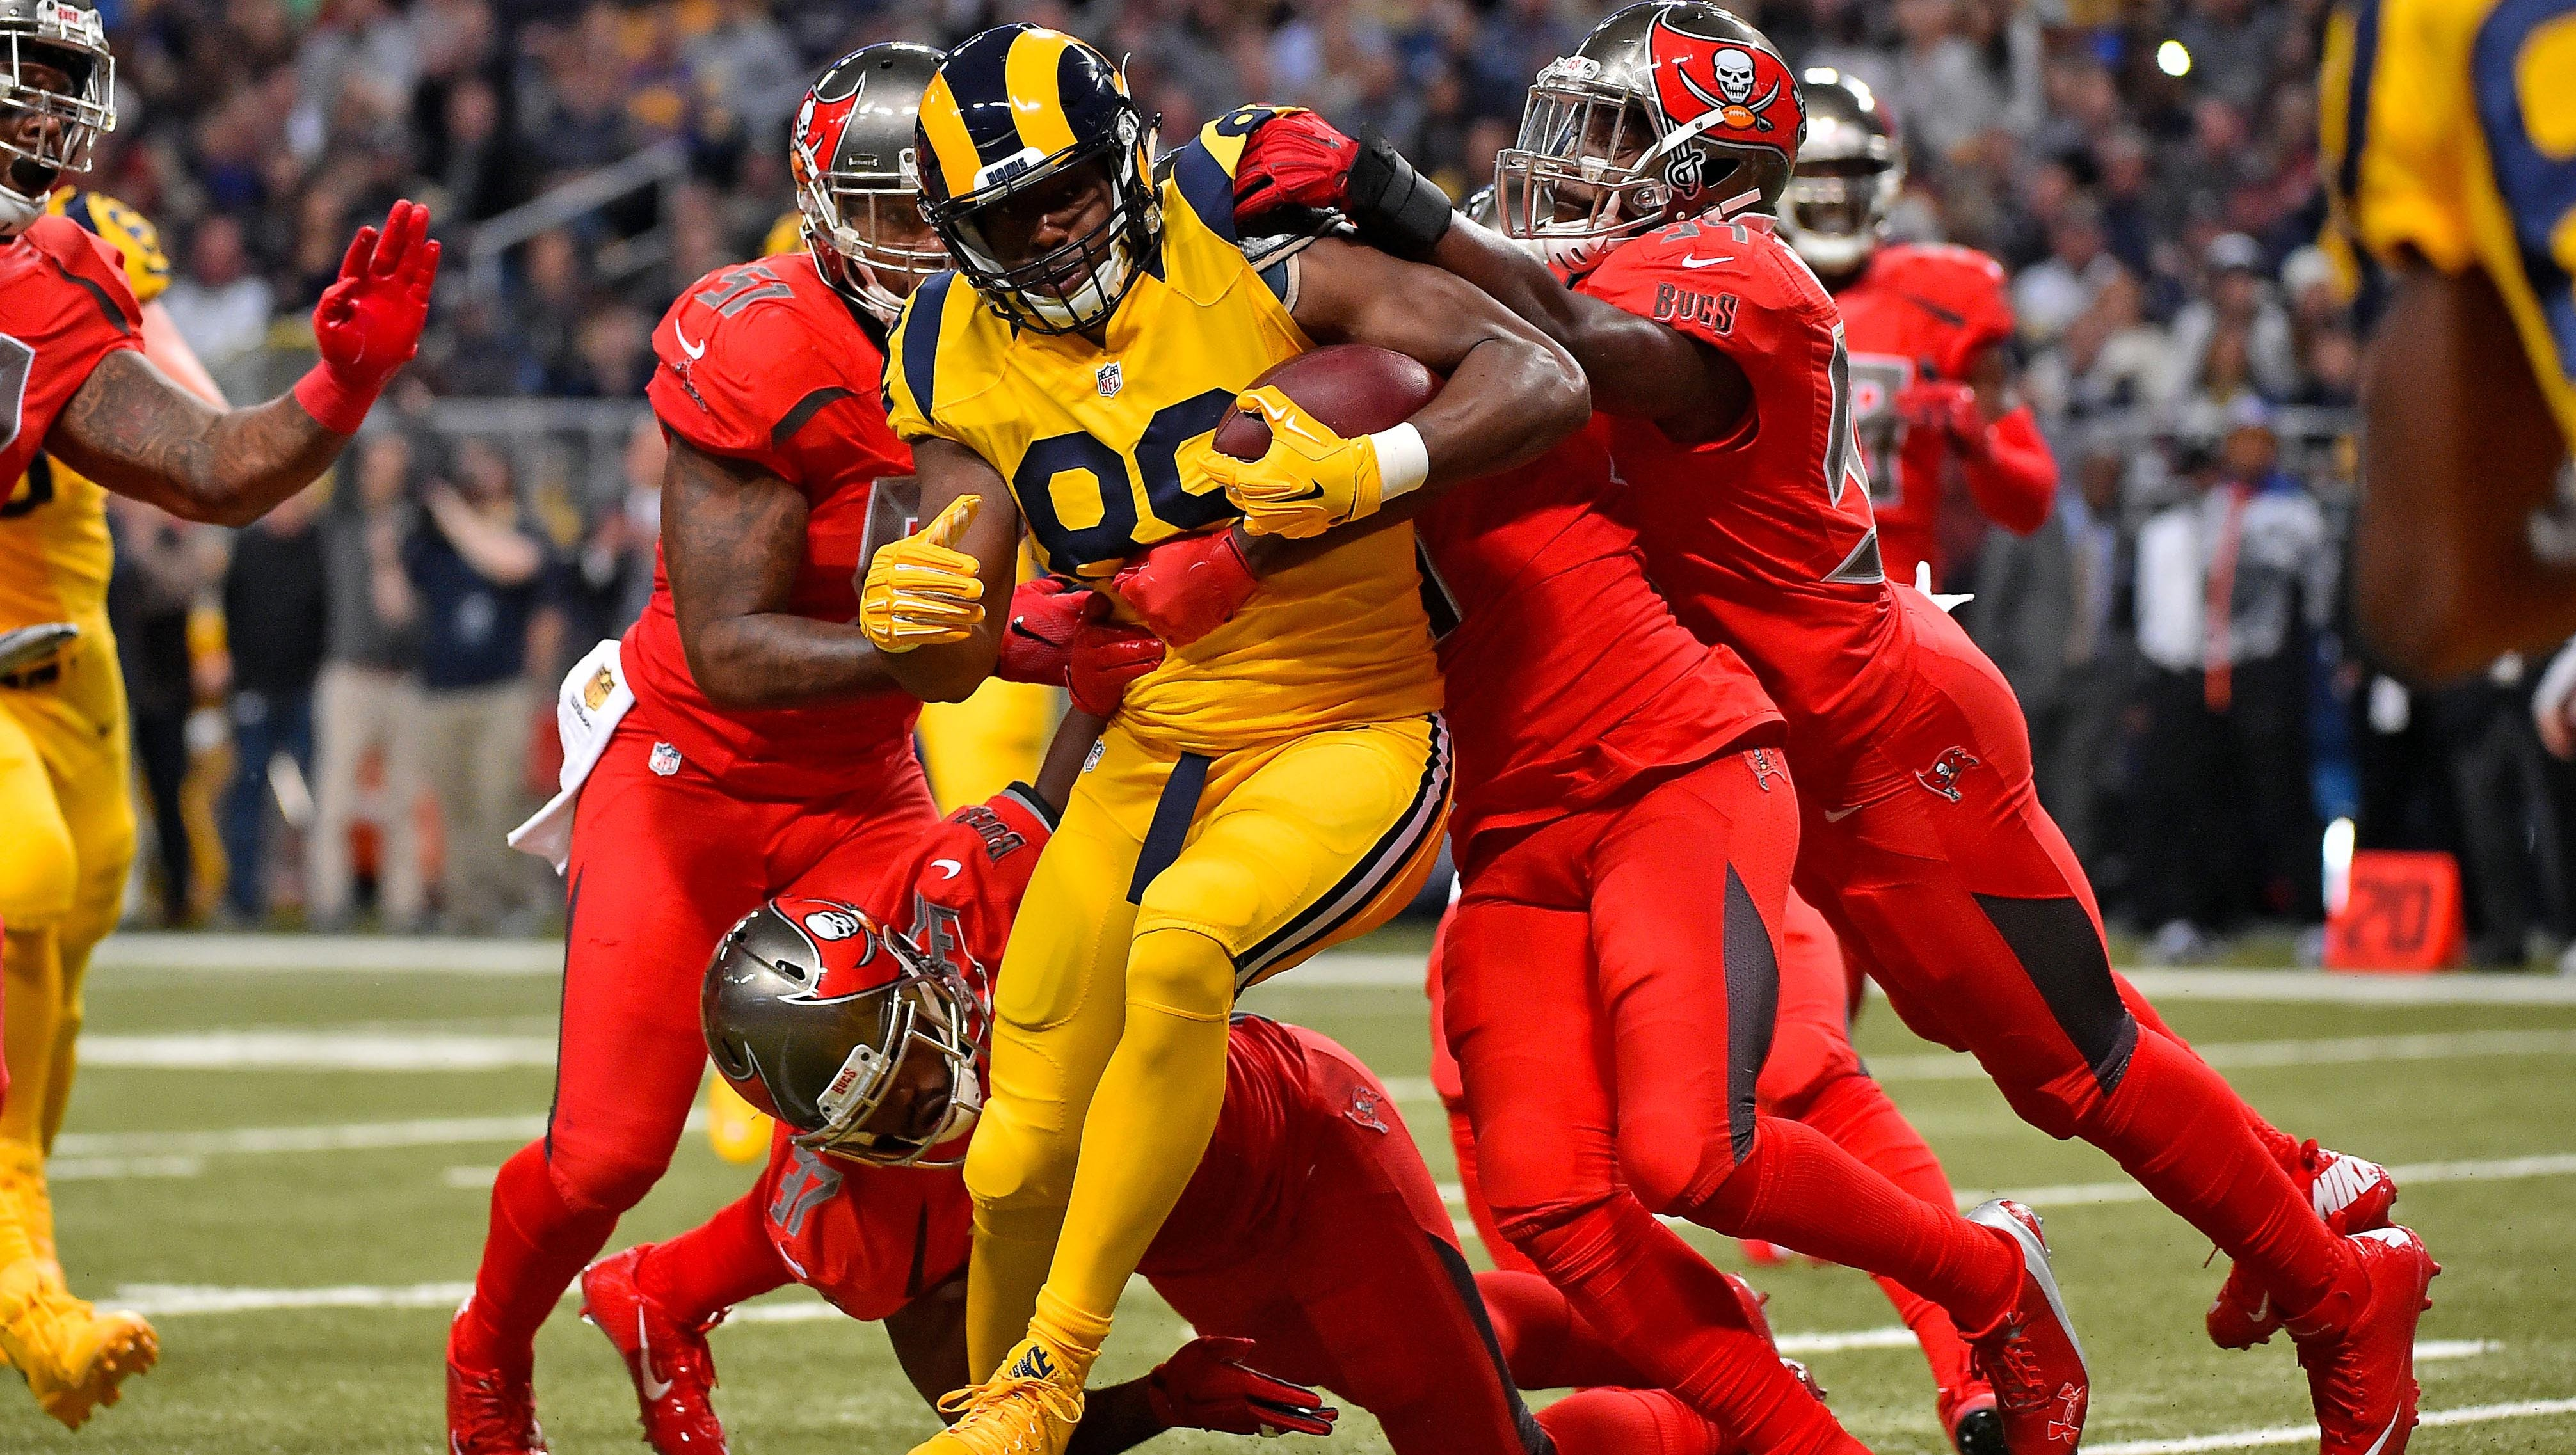 NFL's Color Rush jerseys to remain an option